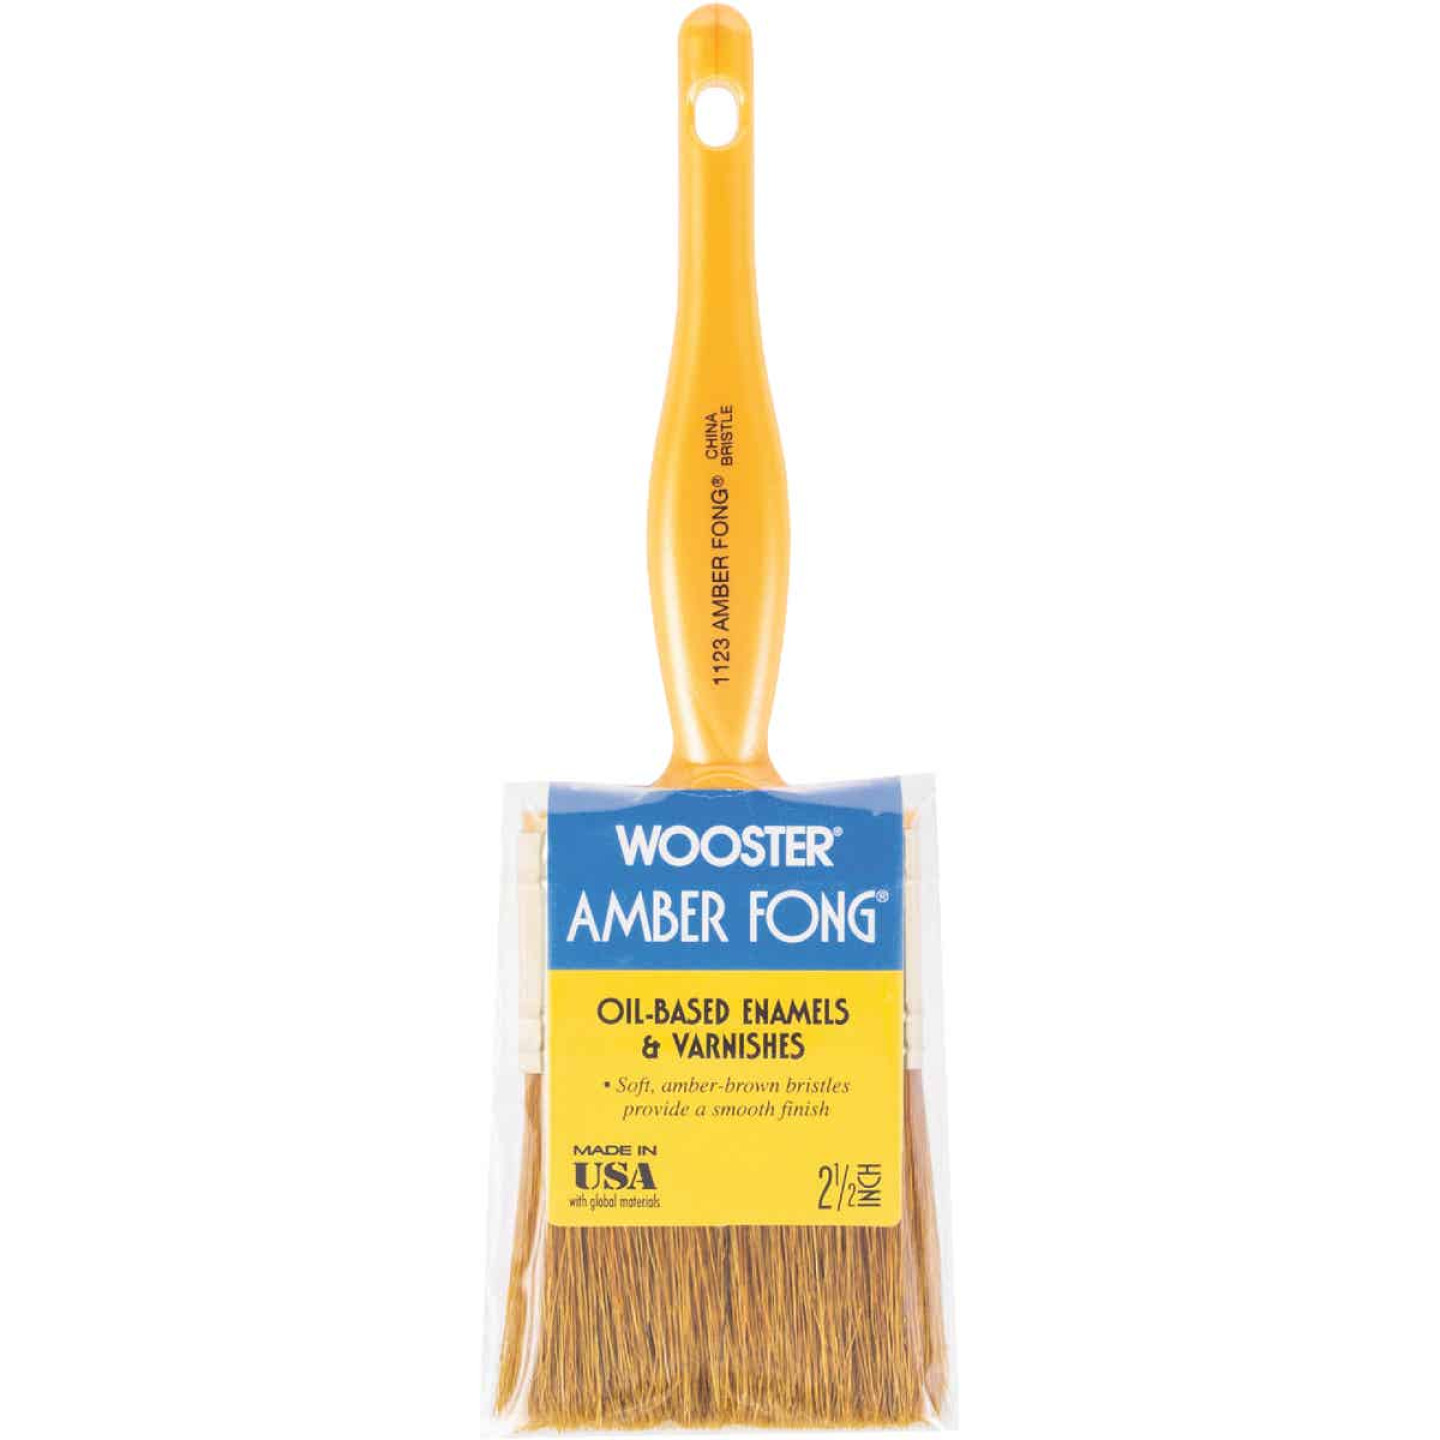 Wooster Amber Fong 2-1/2 In. Flat Paint Brush Image 1